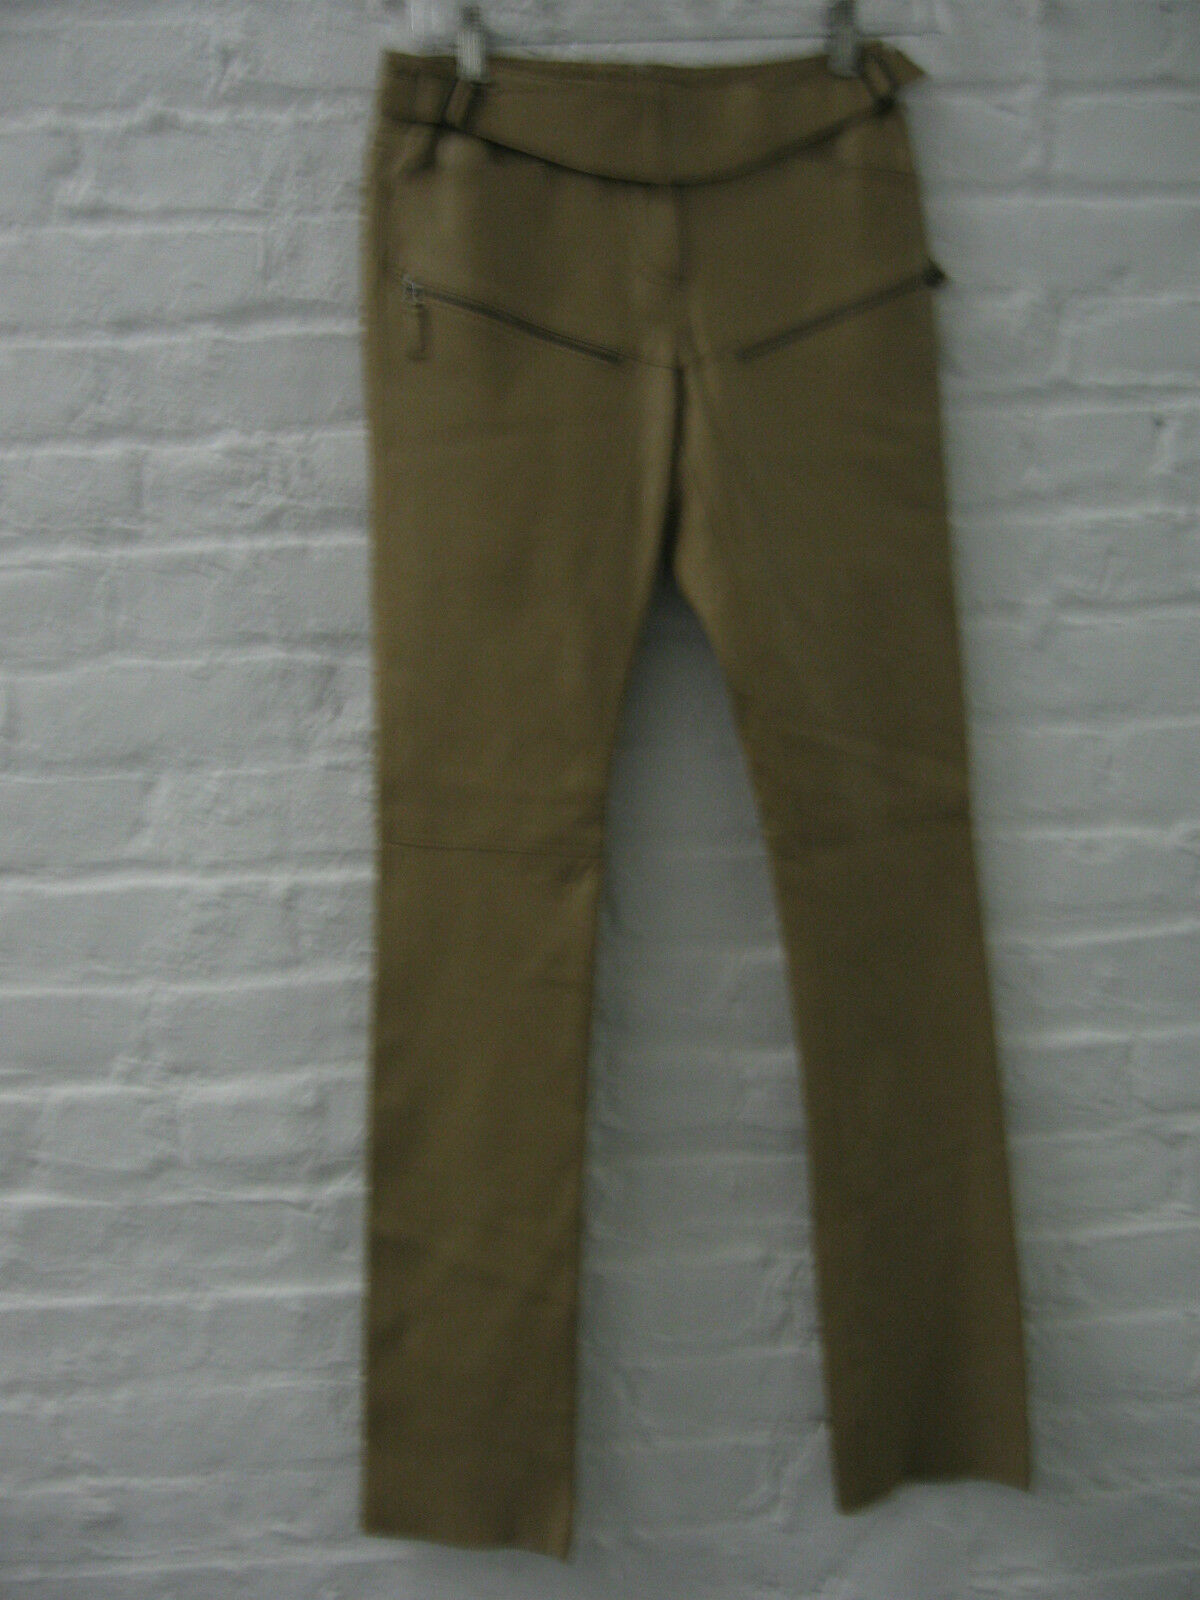 Tight fitting camel leather pants by Max Studio. New with tags.